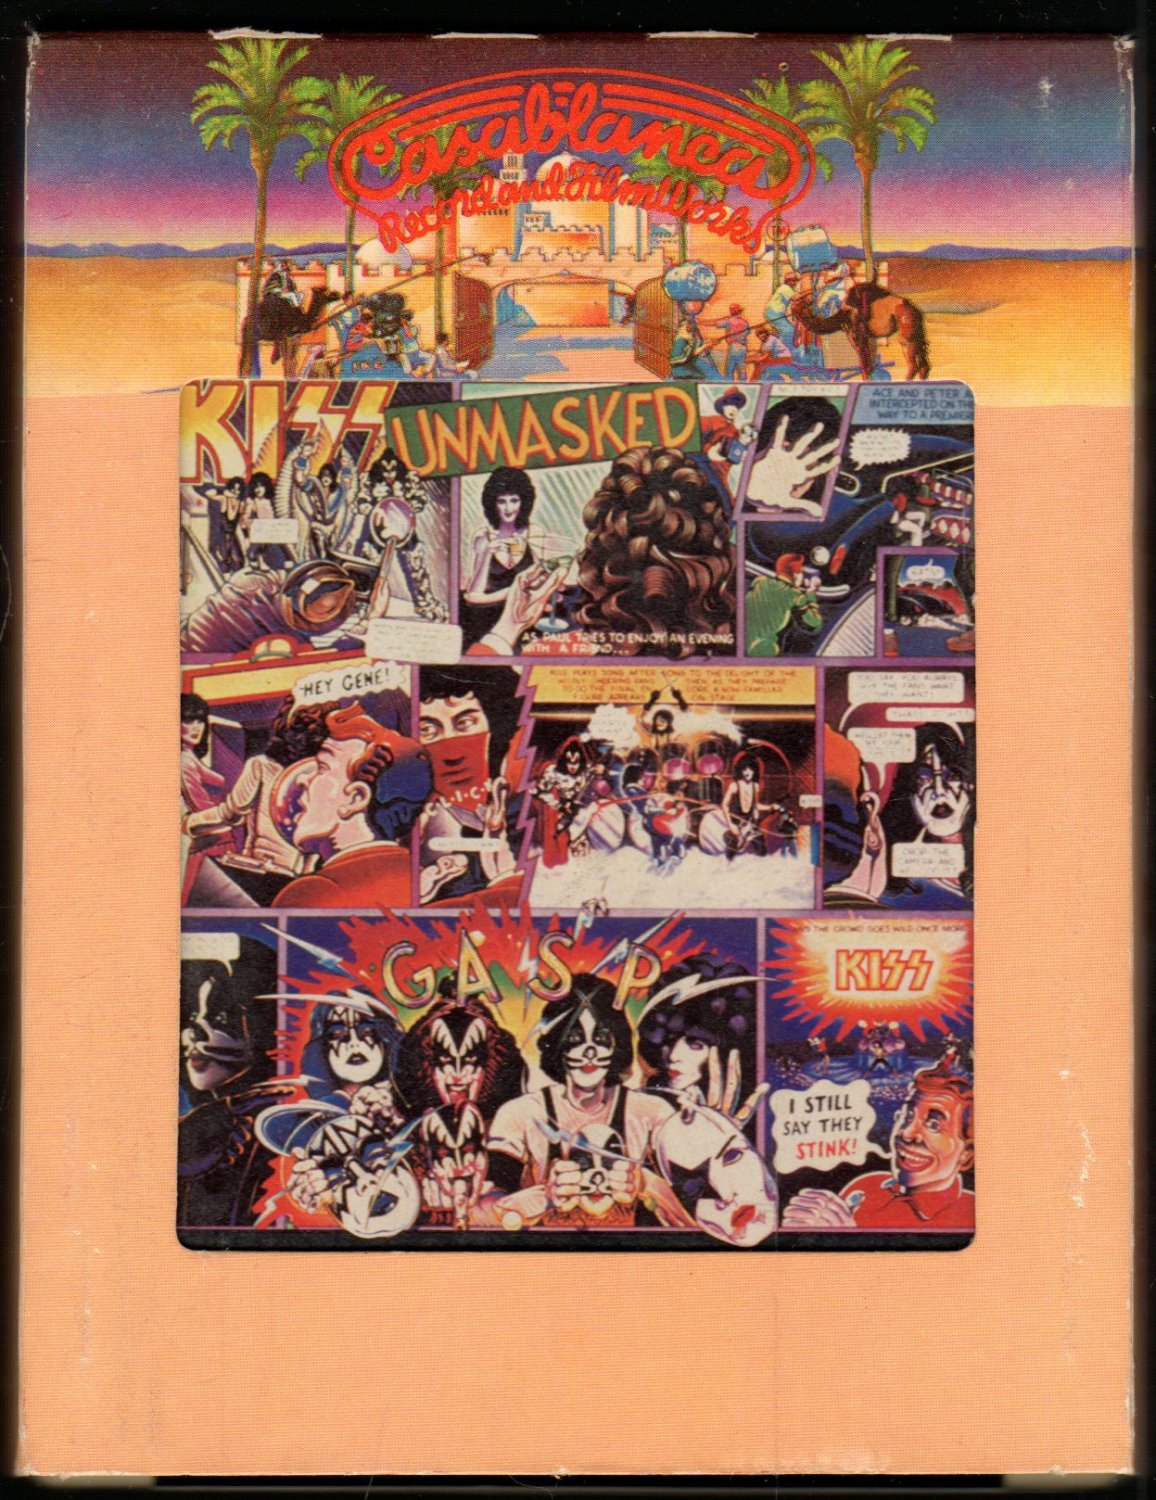 Kiss Unmasked 1980 Casablanca T7 8 Track Tape